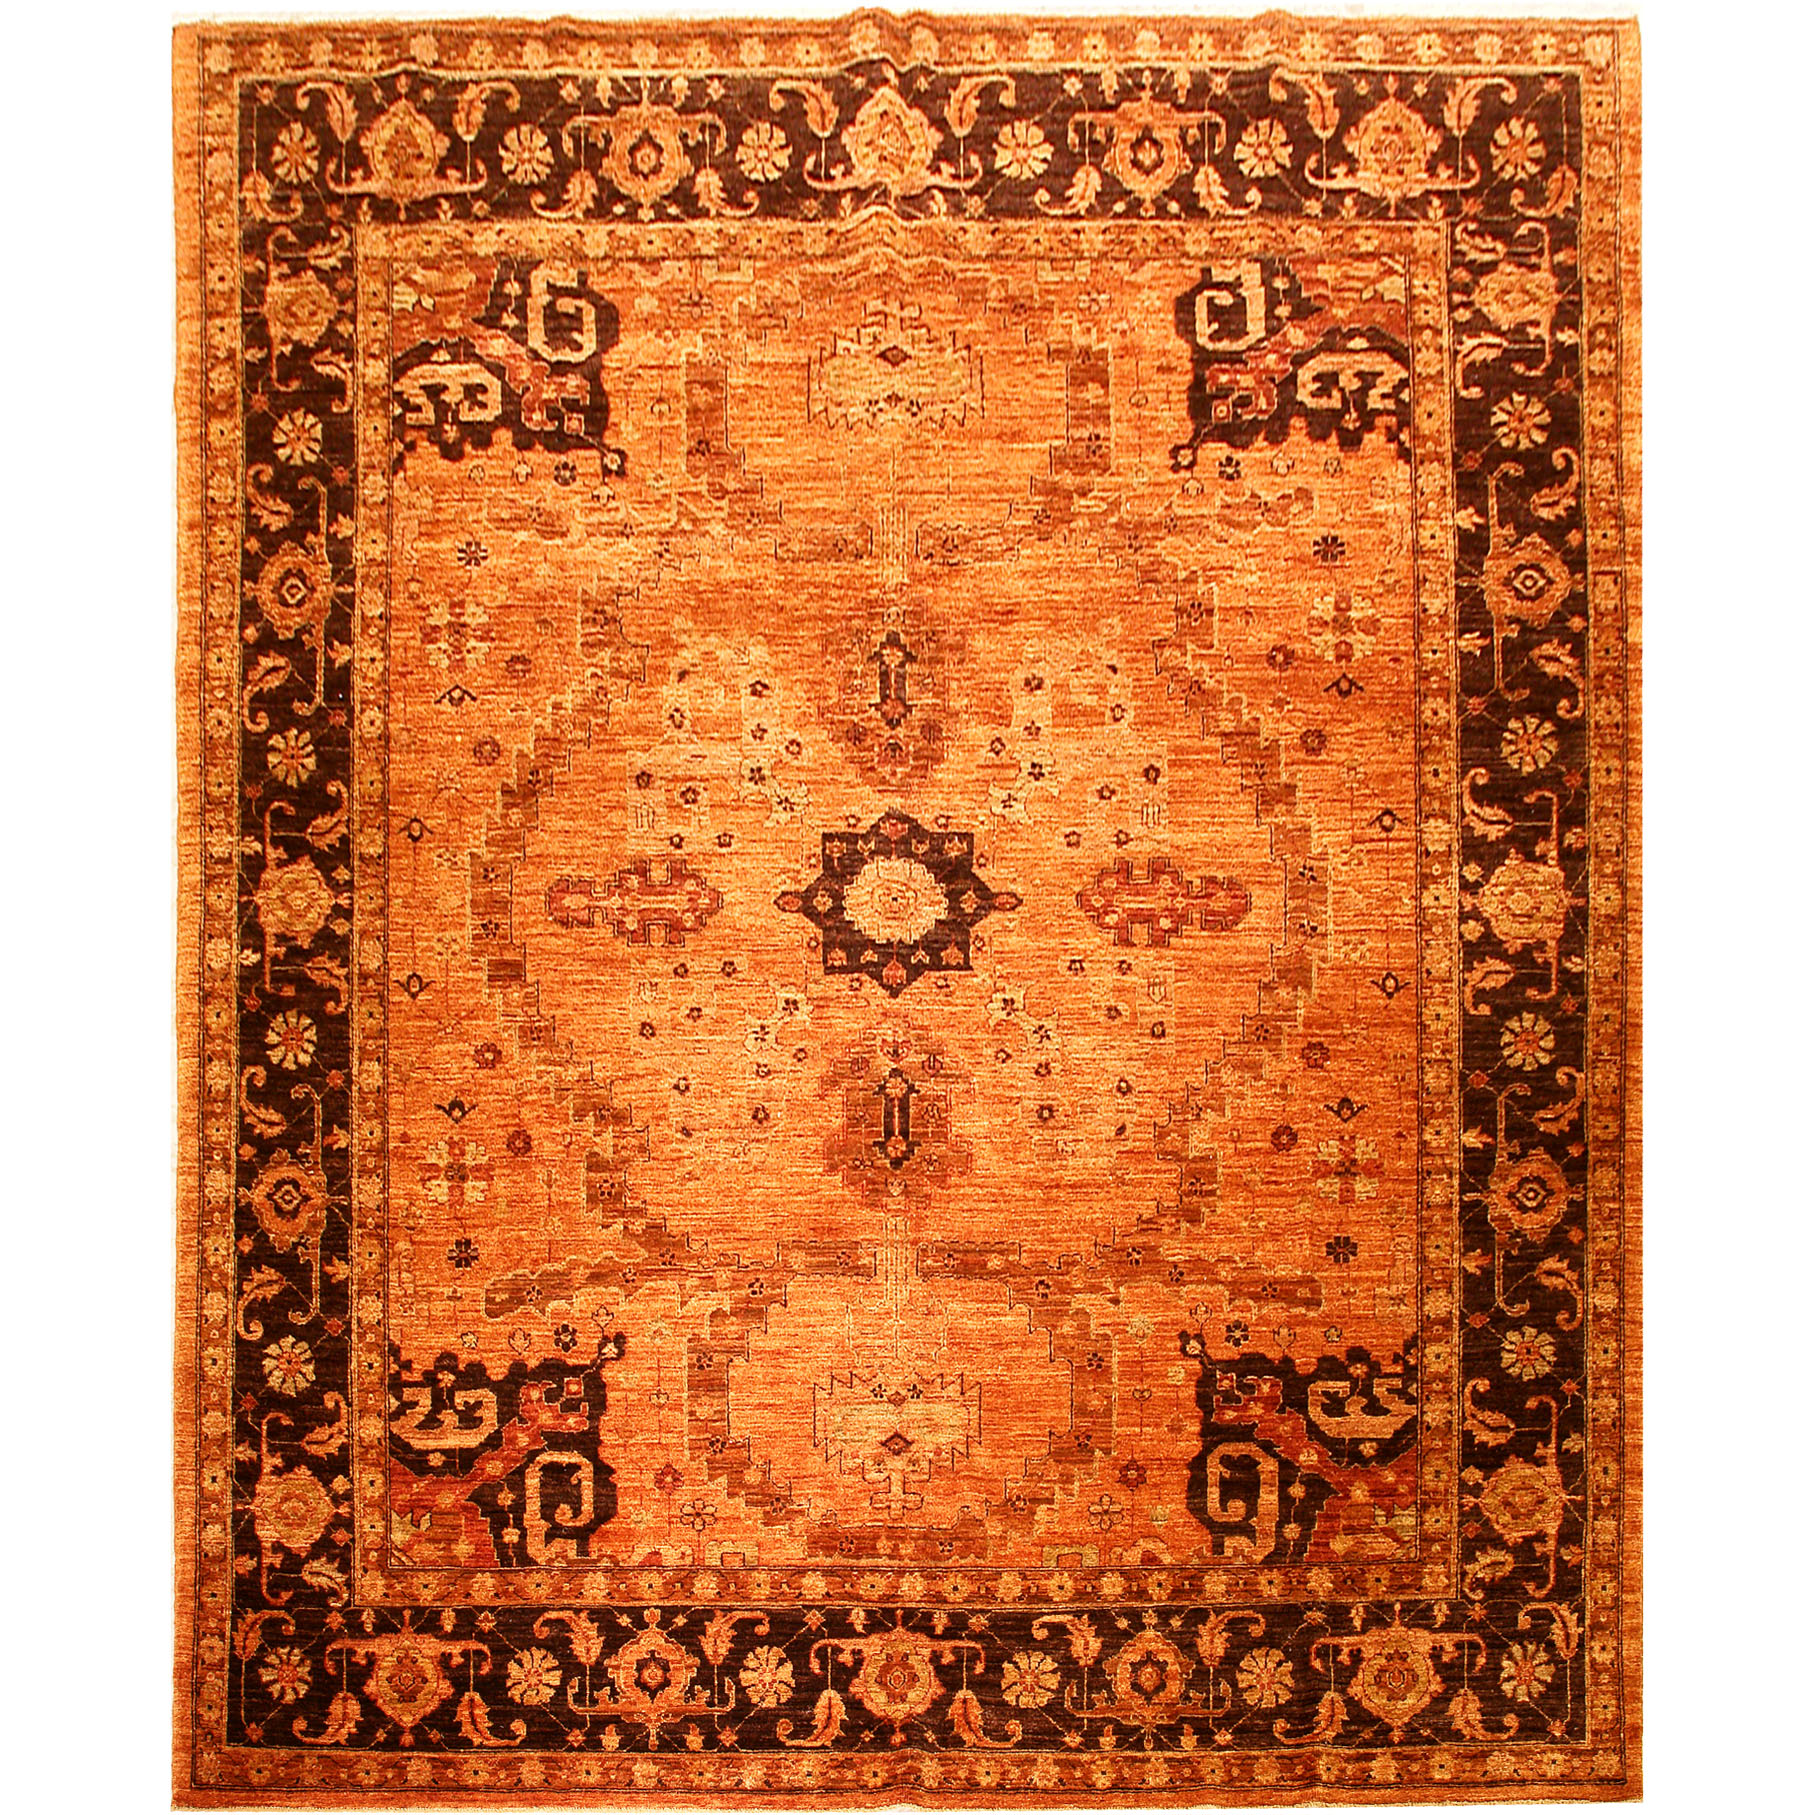 Shop Rugs Ziegler Exclusive 330X280 Afghan Nomad Rug